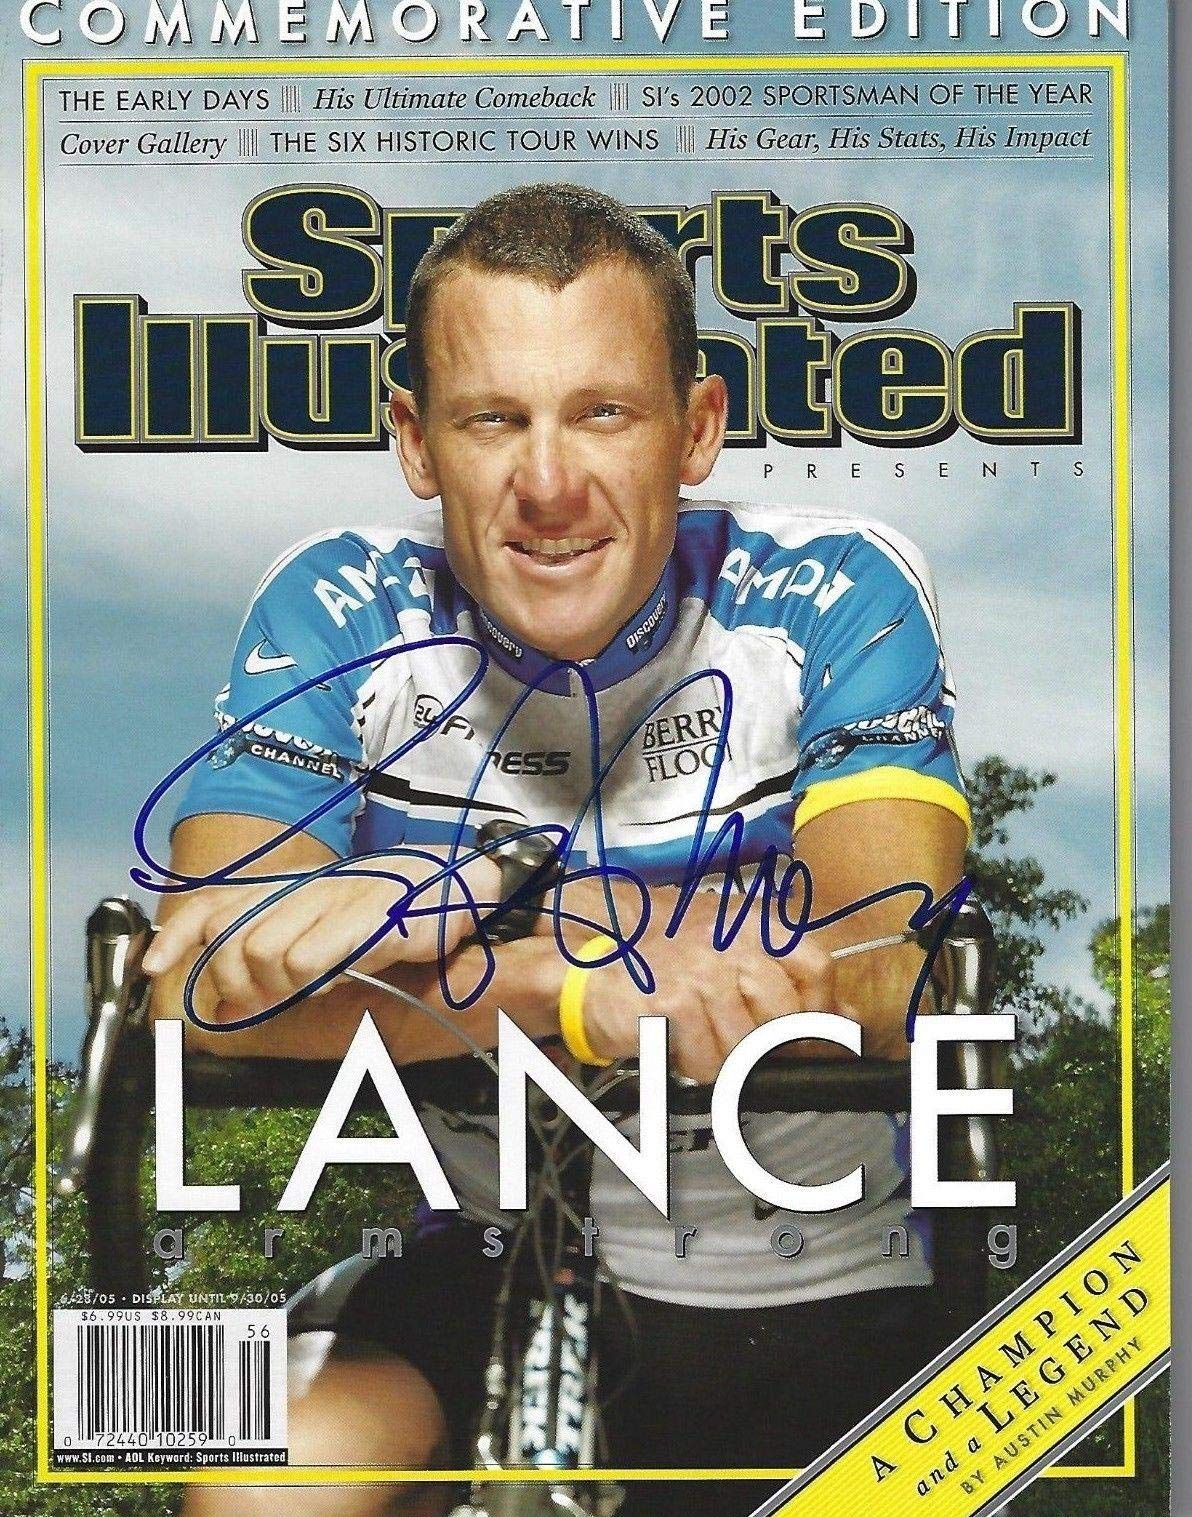 LANCE ARMSTRONG Signed 6/28/05 SPORTS ILLUSTRATED with Schwartz COA (NO LABEL) Autographed Sports Magazines